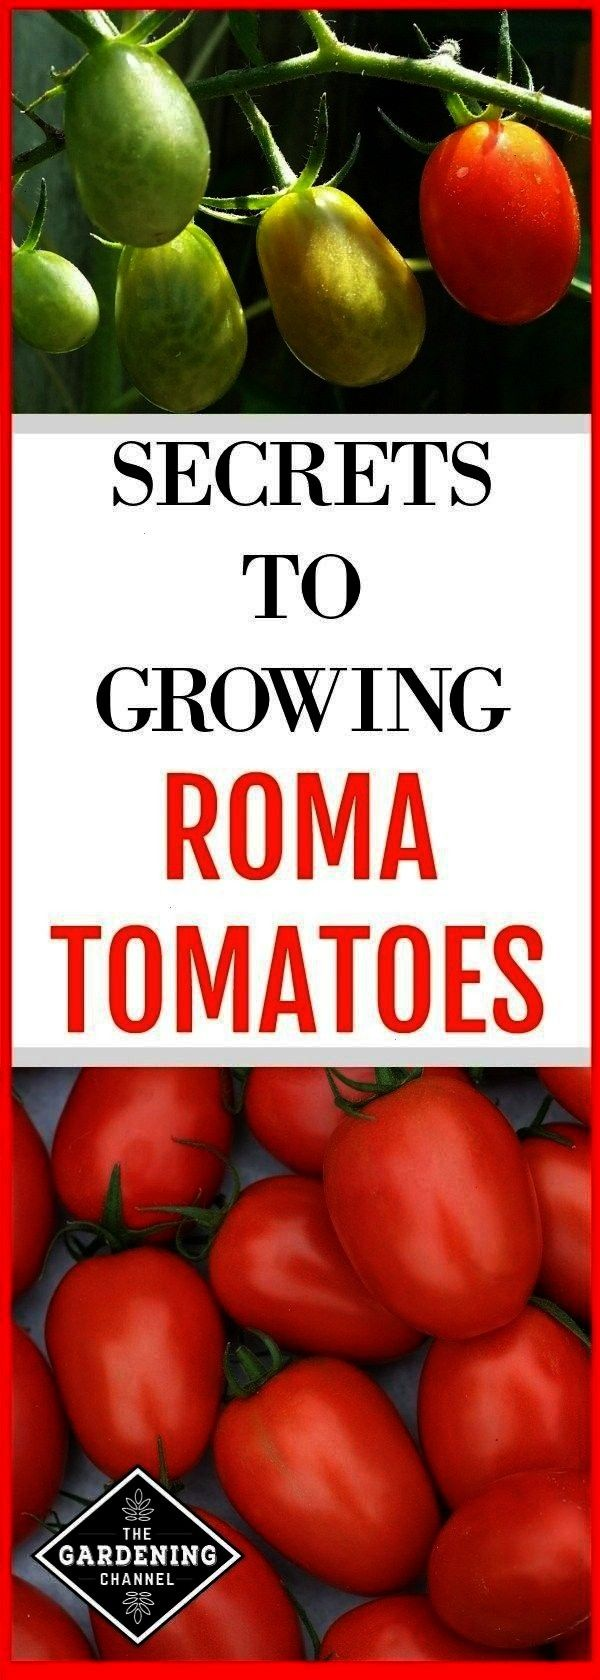 in the garden and roma tomato harvest with text overlay secrets to growing roma tomatoesroma tomatoes growing in the garden and roma tomato harvest with text overlay secr...